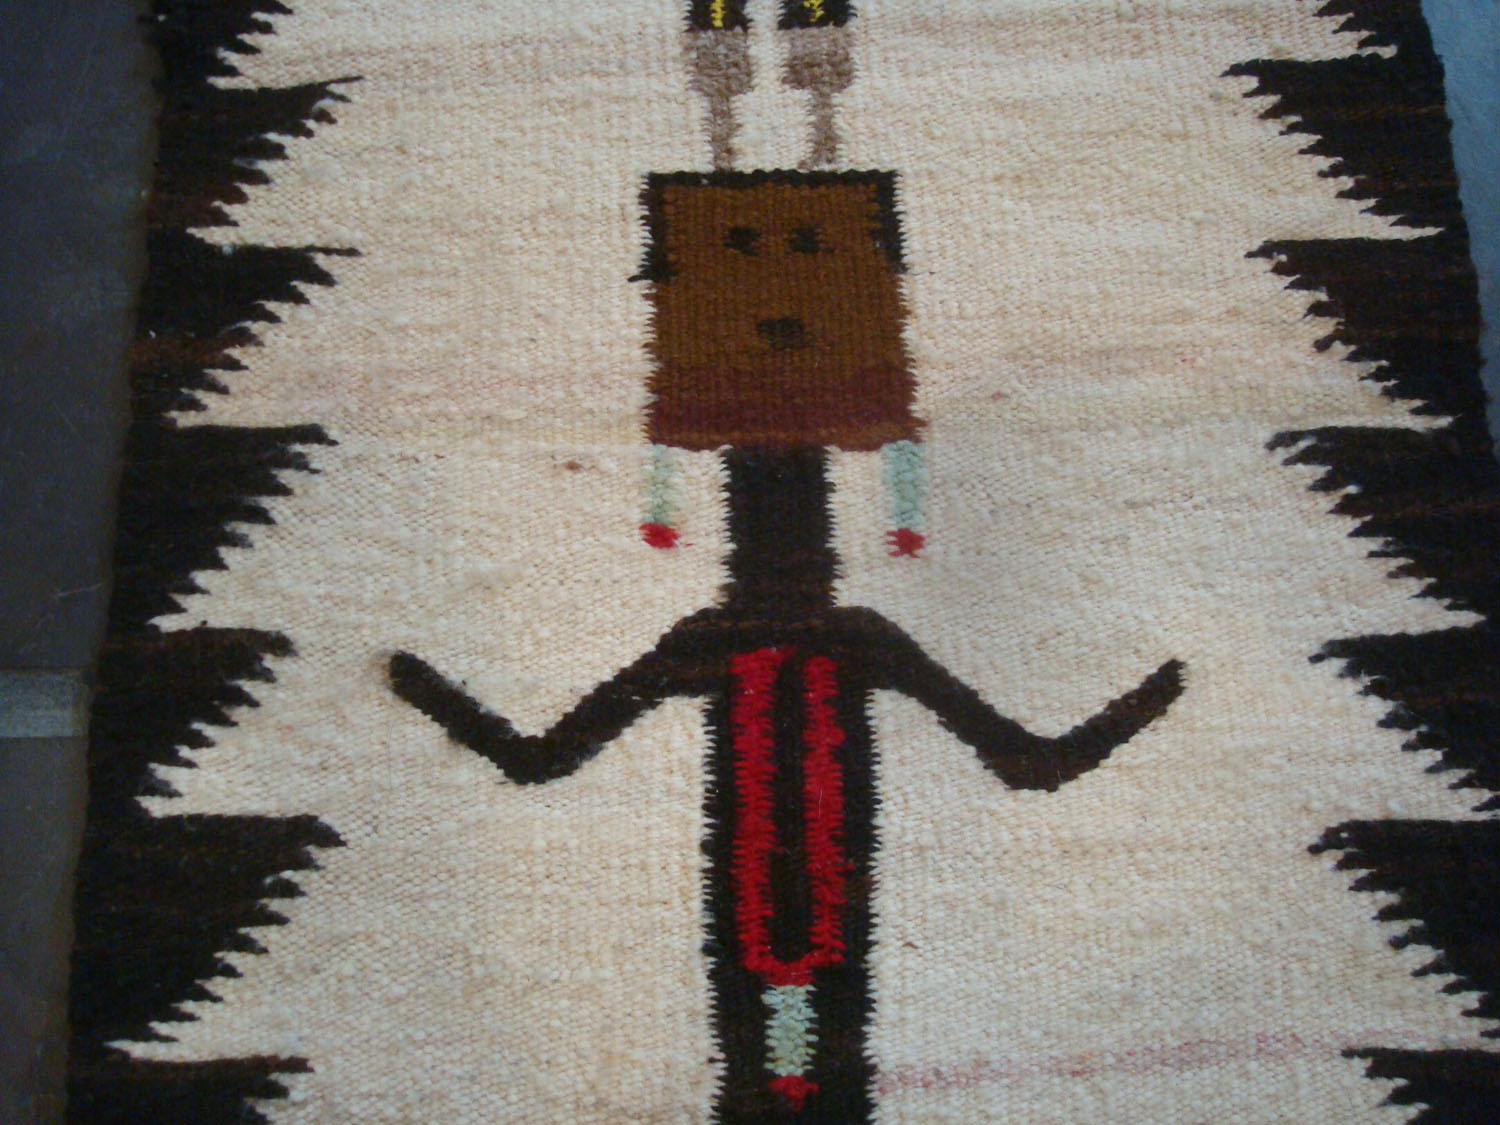 Native American Indian and Navajo Rugs and Textiles at Pocas Cosas ...